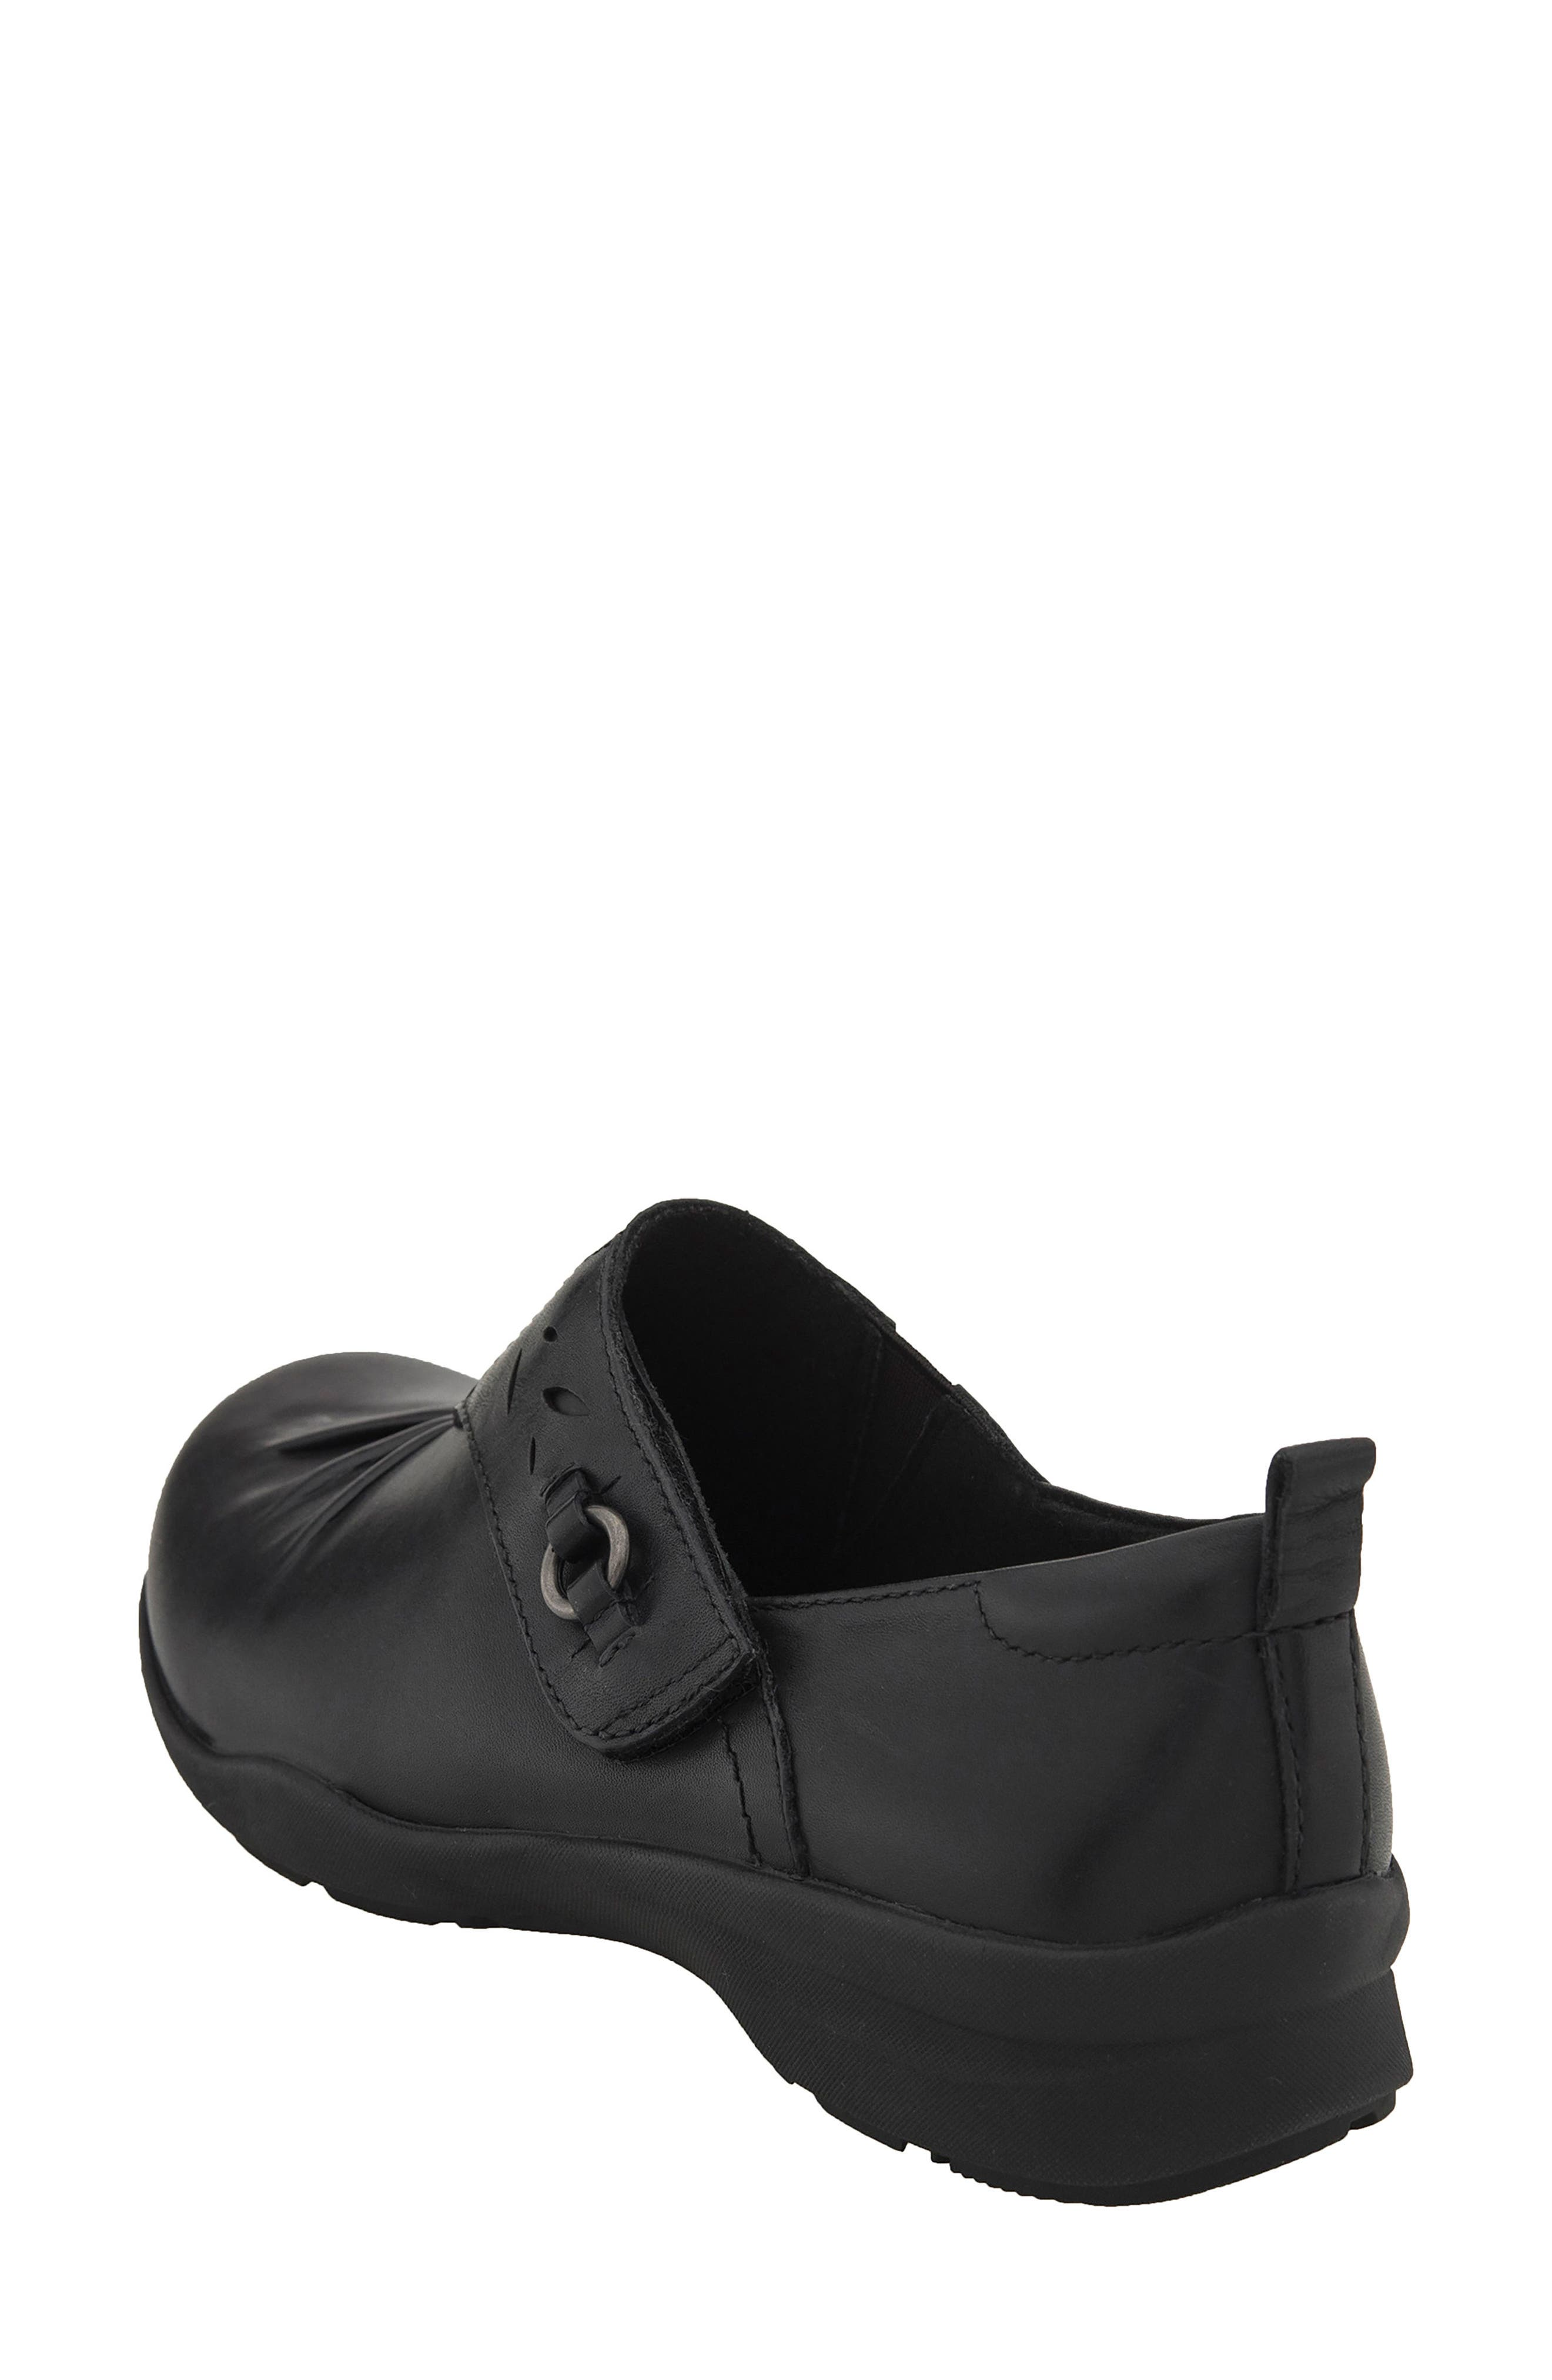 Amity Loafer,                             Alternate thumbnail 2, color,                             012